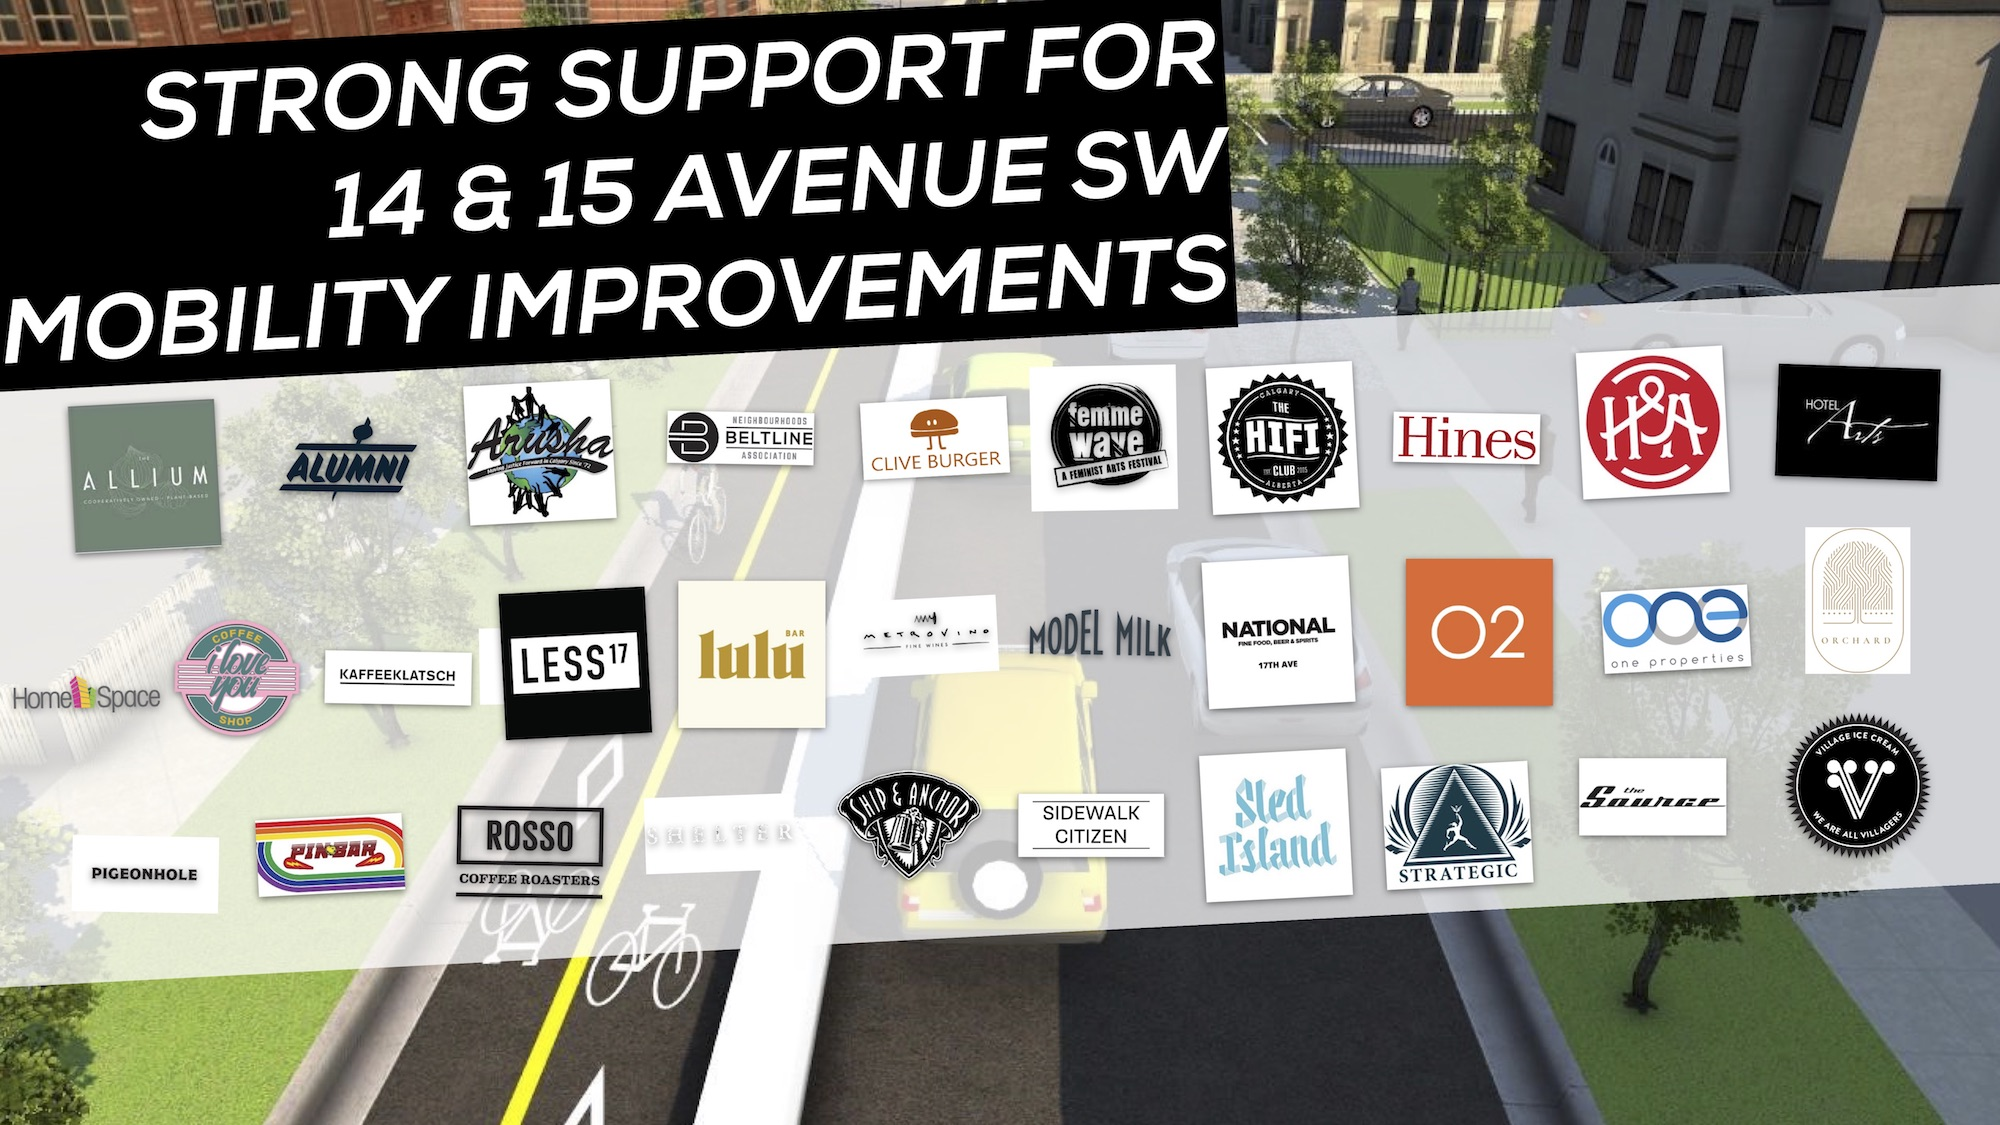 15_Ave_Cycle_Track_Support.jpg